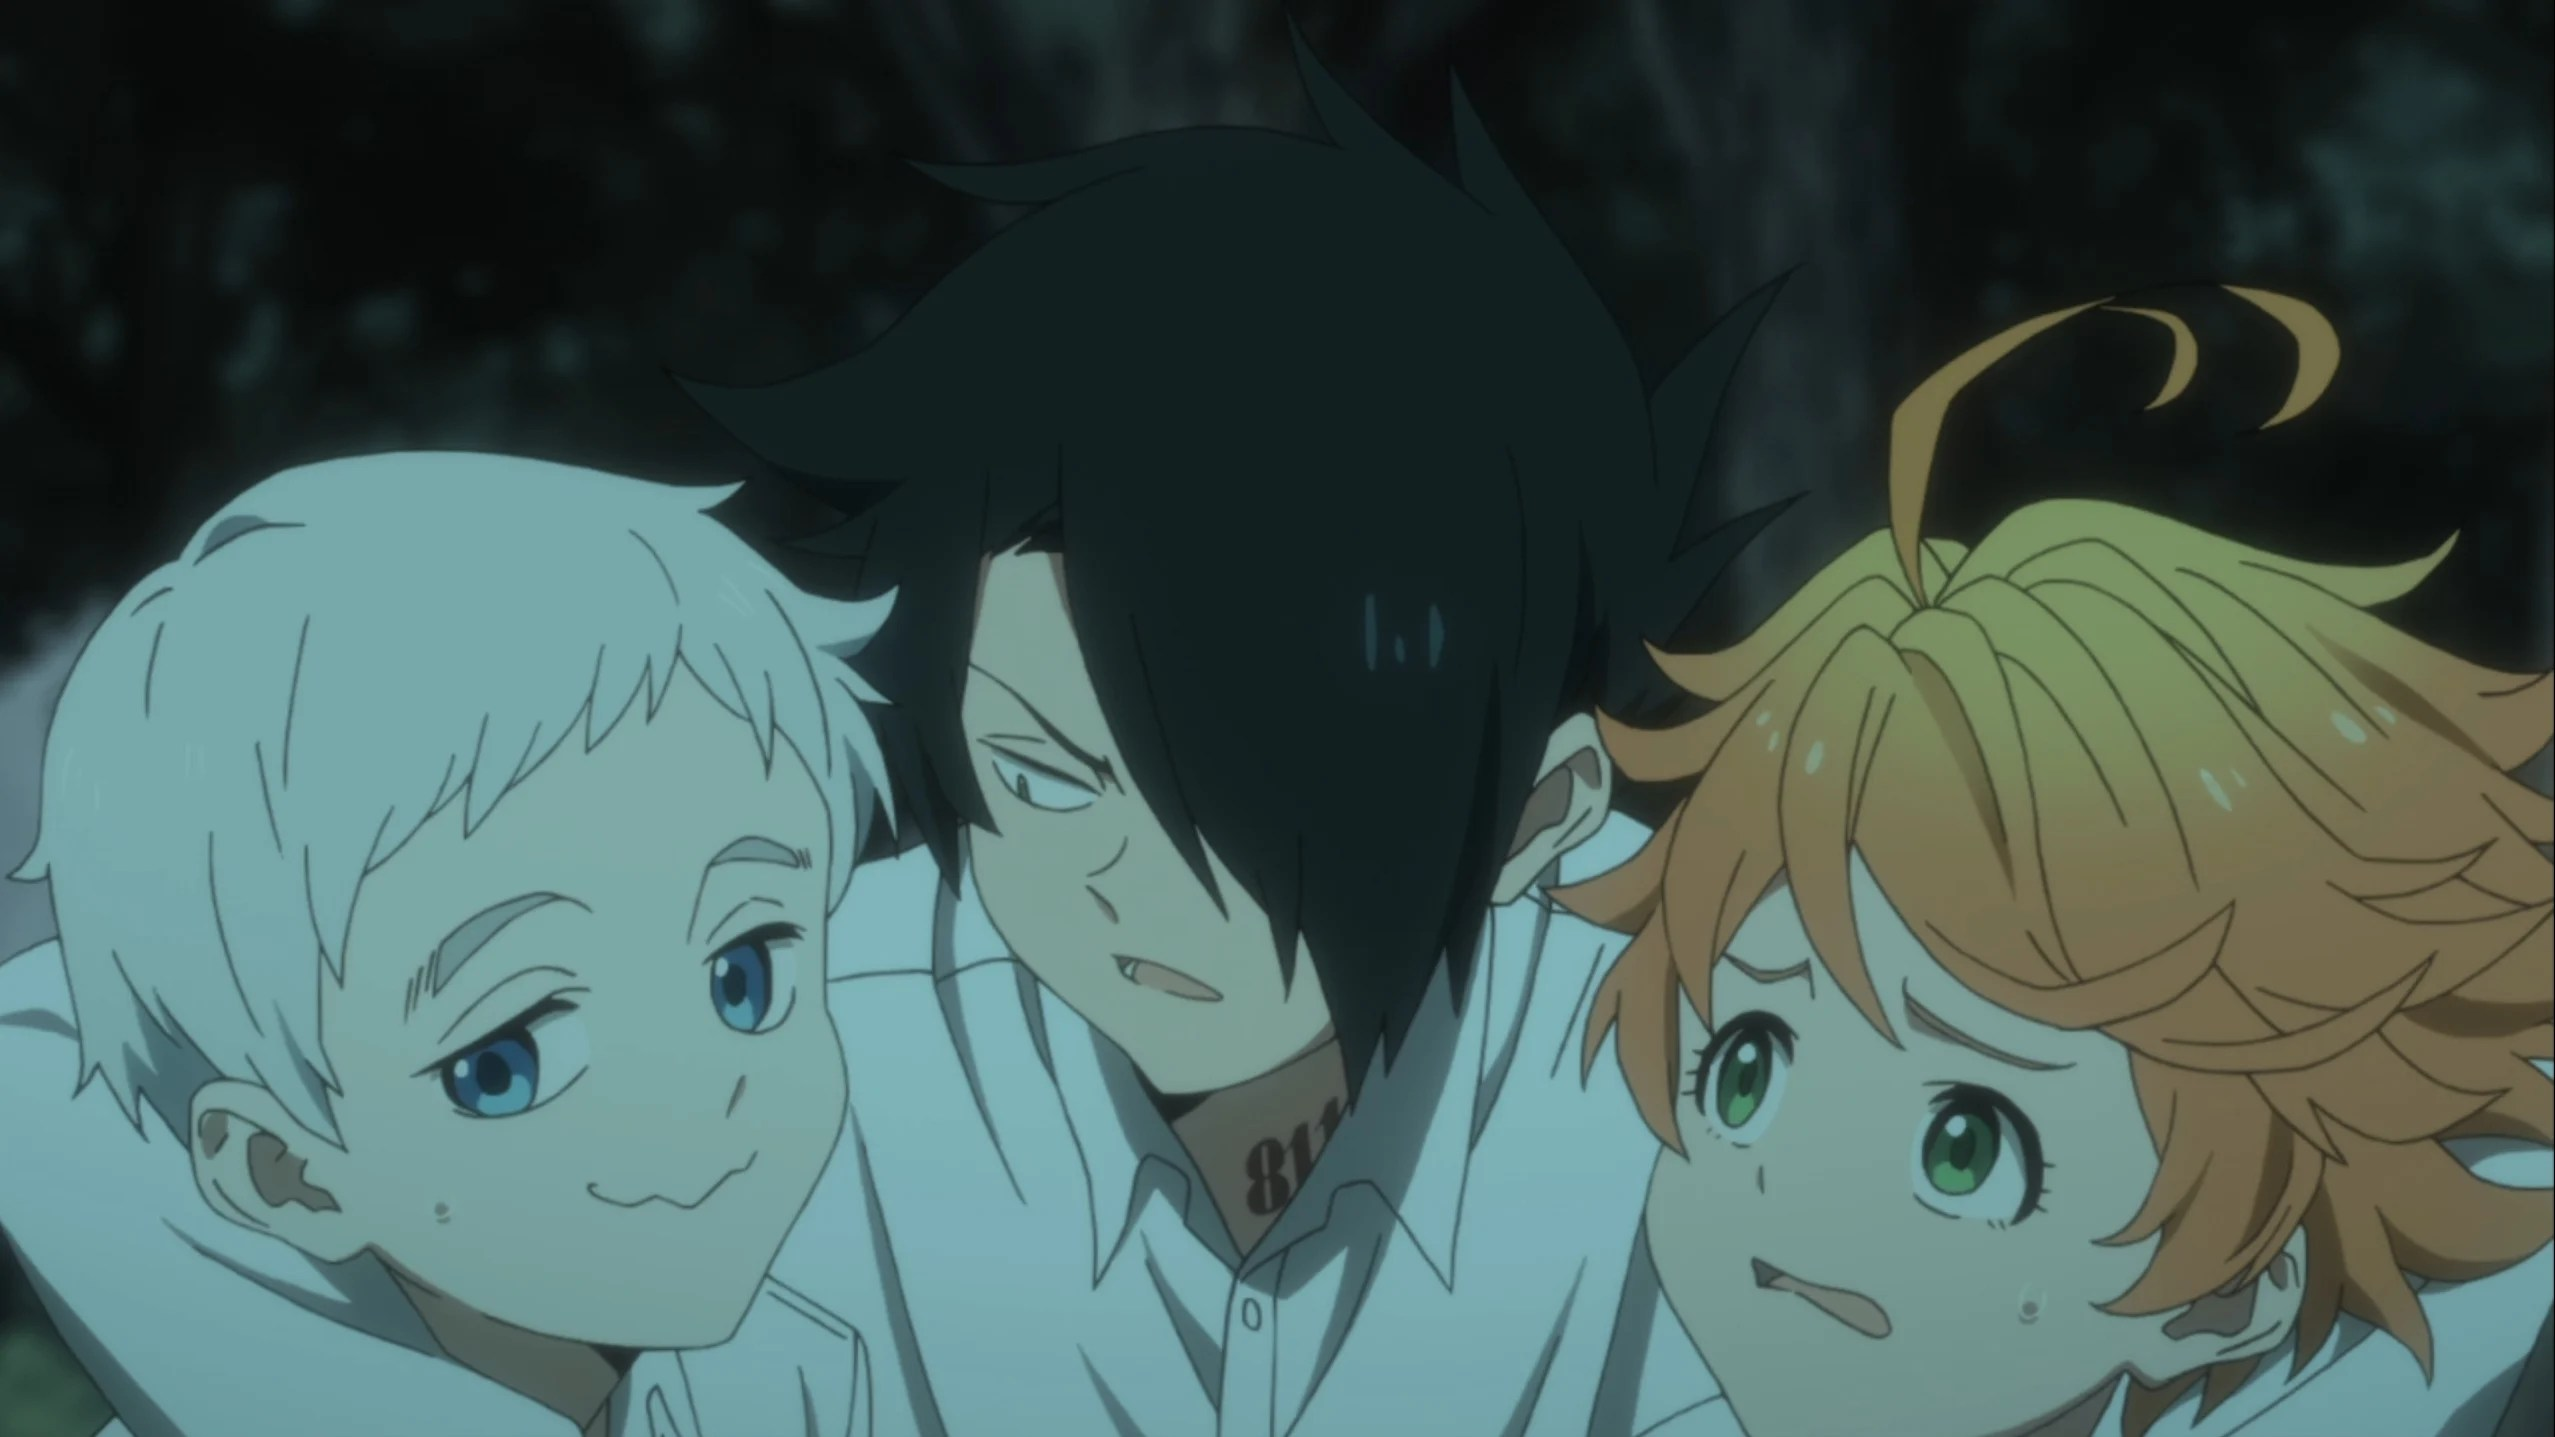 Anime Wallpaper Steam Episodes 1 2 The Promised Neverland Anime News Network